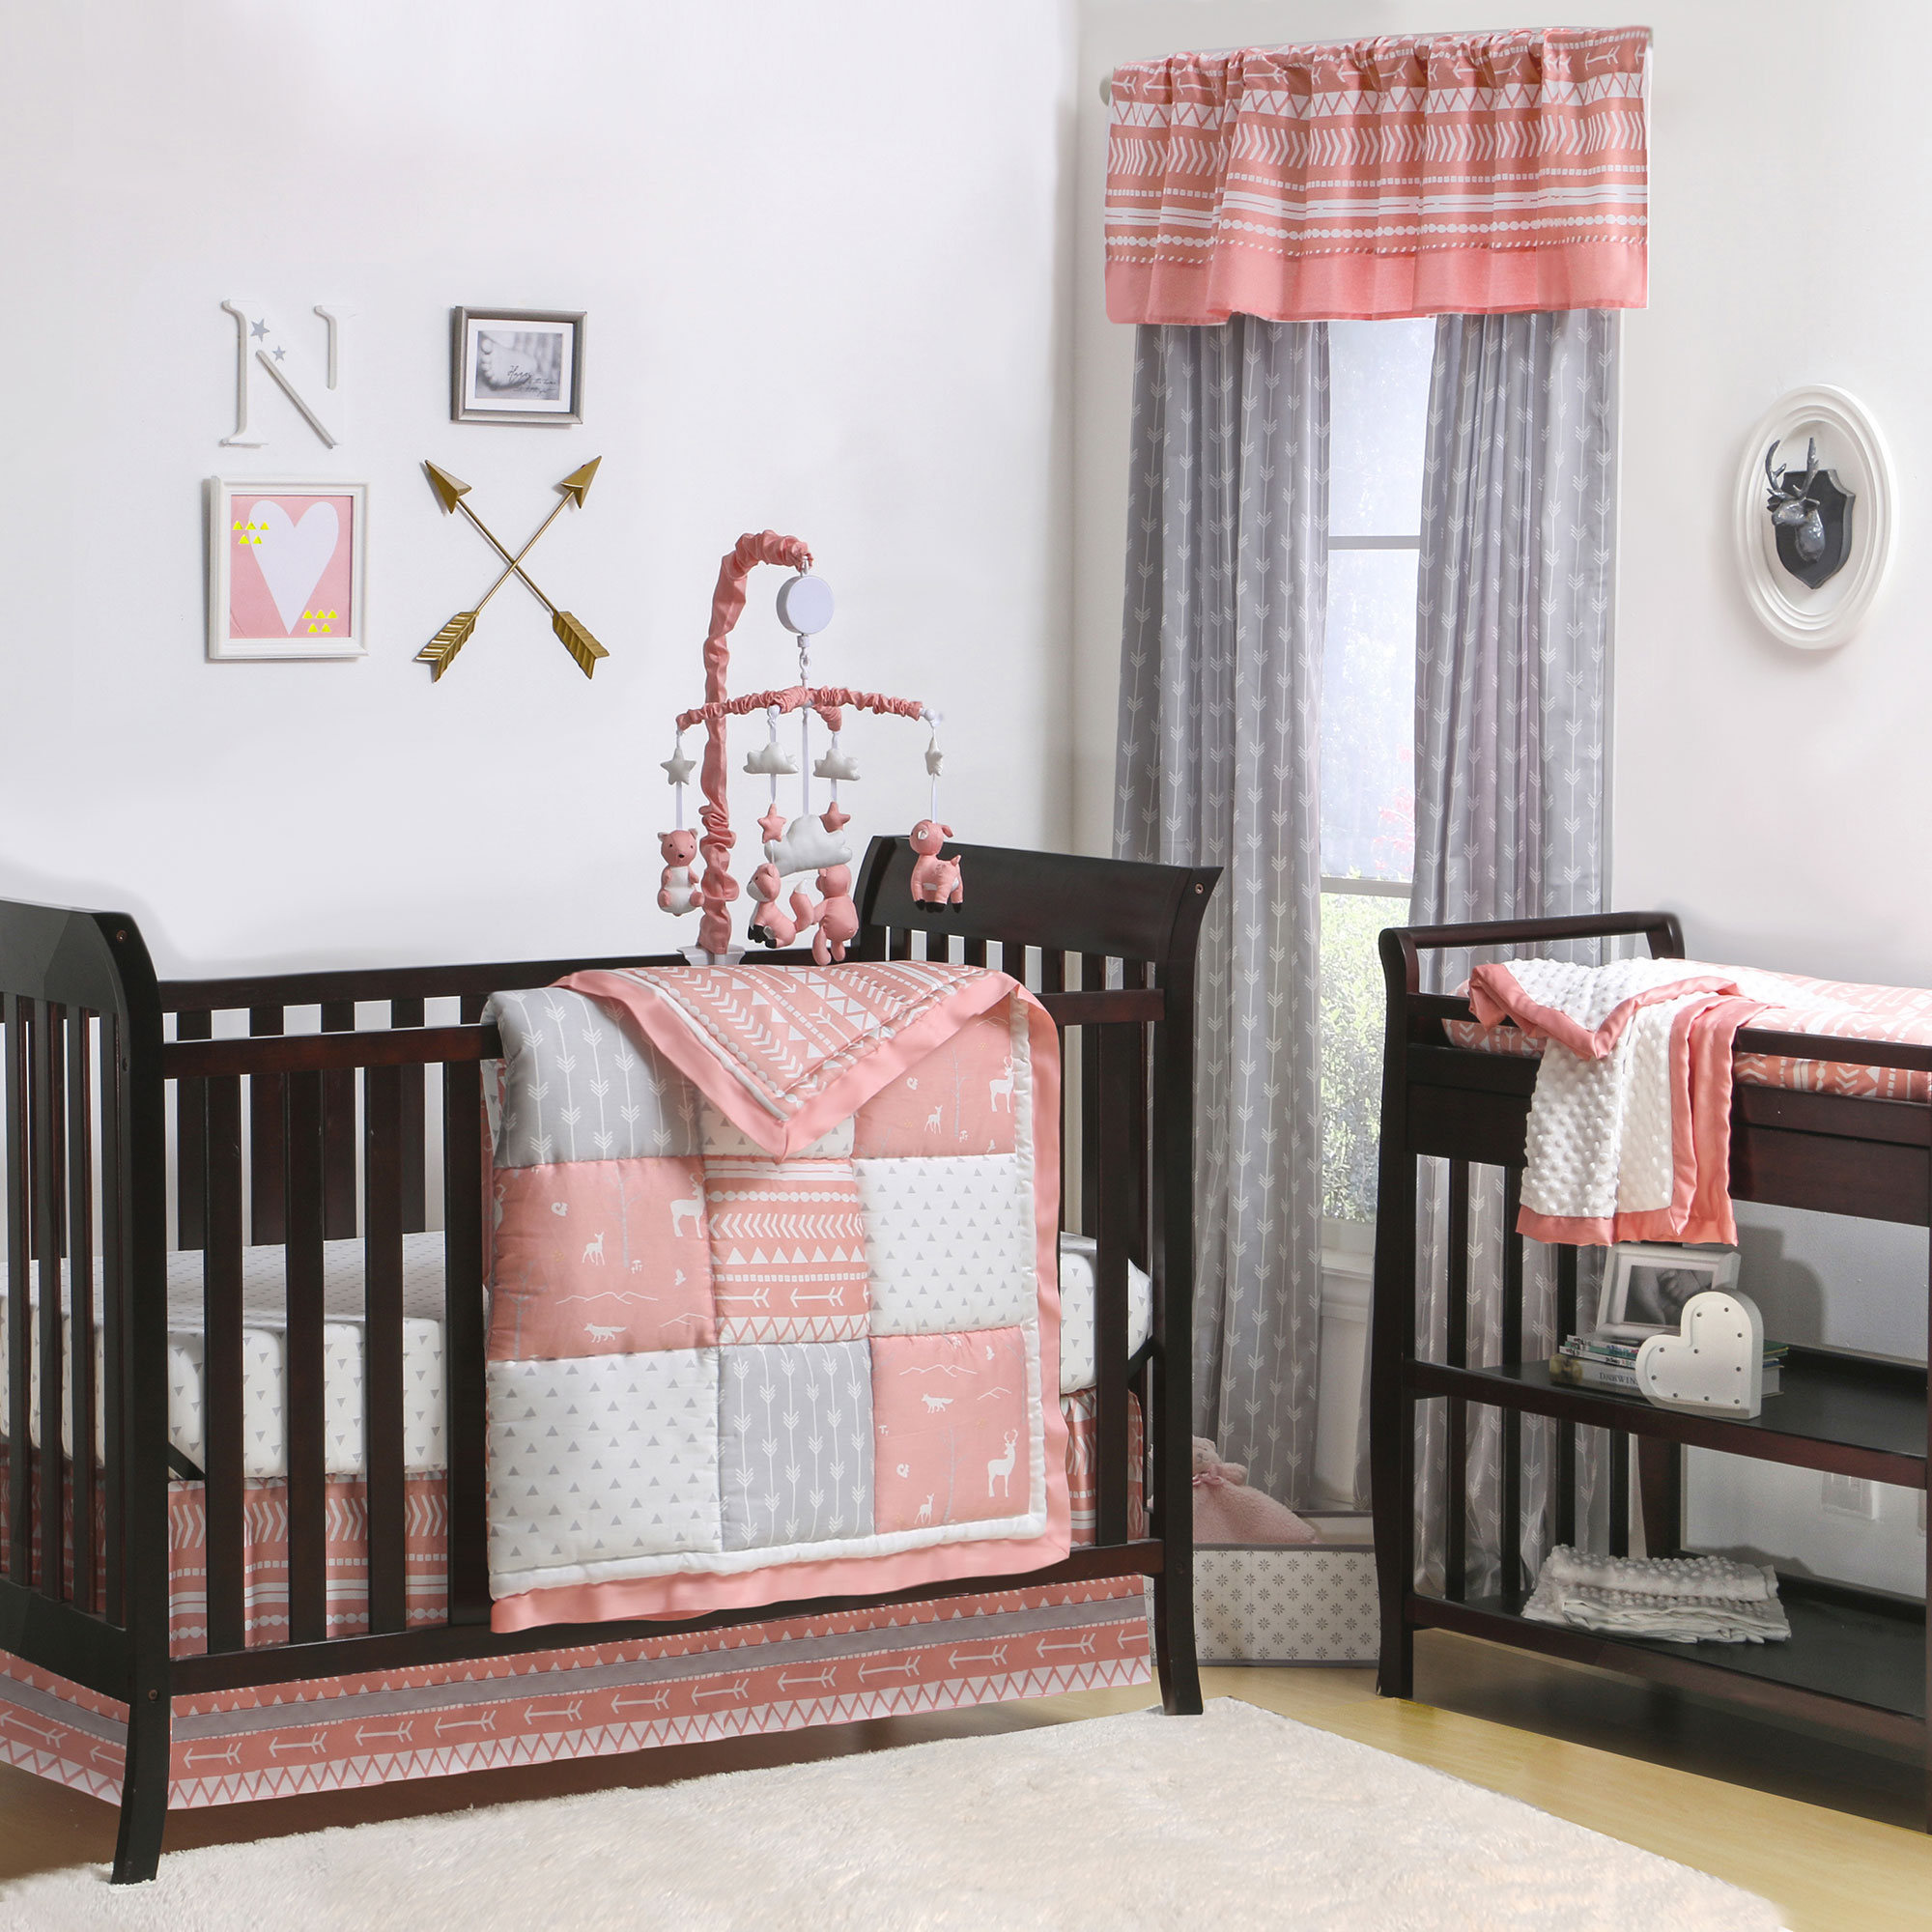 The Peanut Shell 4 Piece Baby Crib Bedding Set - Coral Pink Woodland and Native American Theme Patchwork - 100% Cotton Quilt, Dust Ruffle, Fitted Sheet, and Mobile